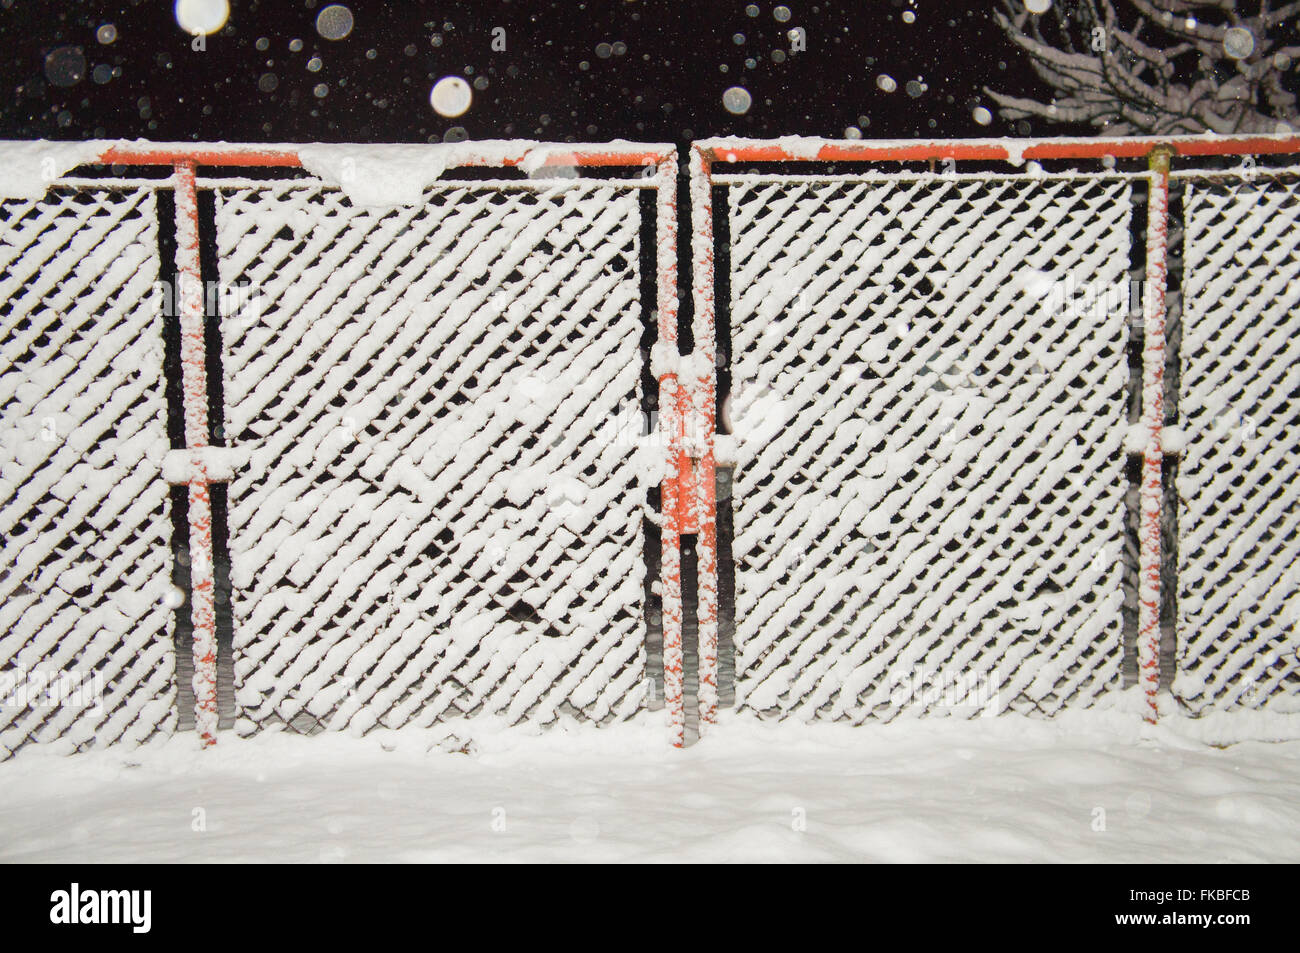 wire fence gate, winter, snow, snowfall, night photo Stock Photo ...